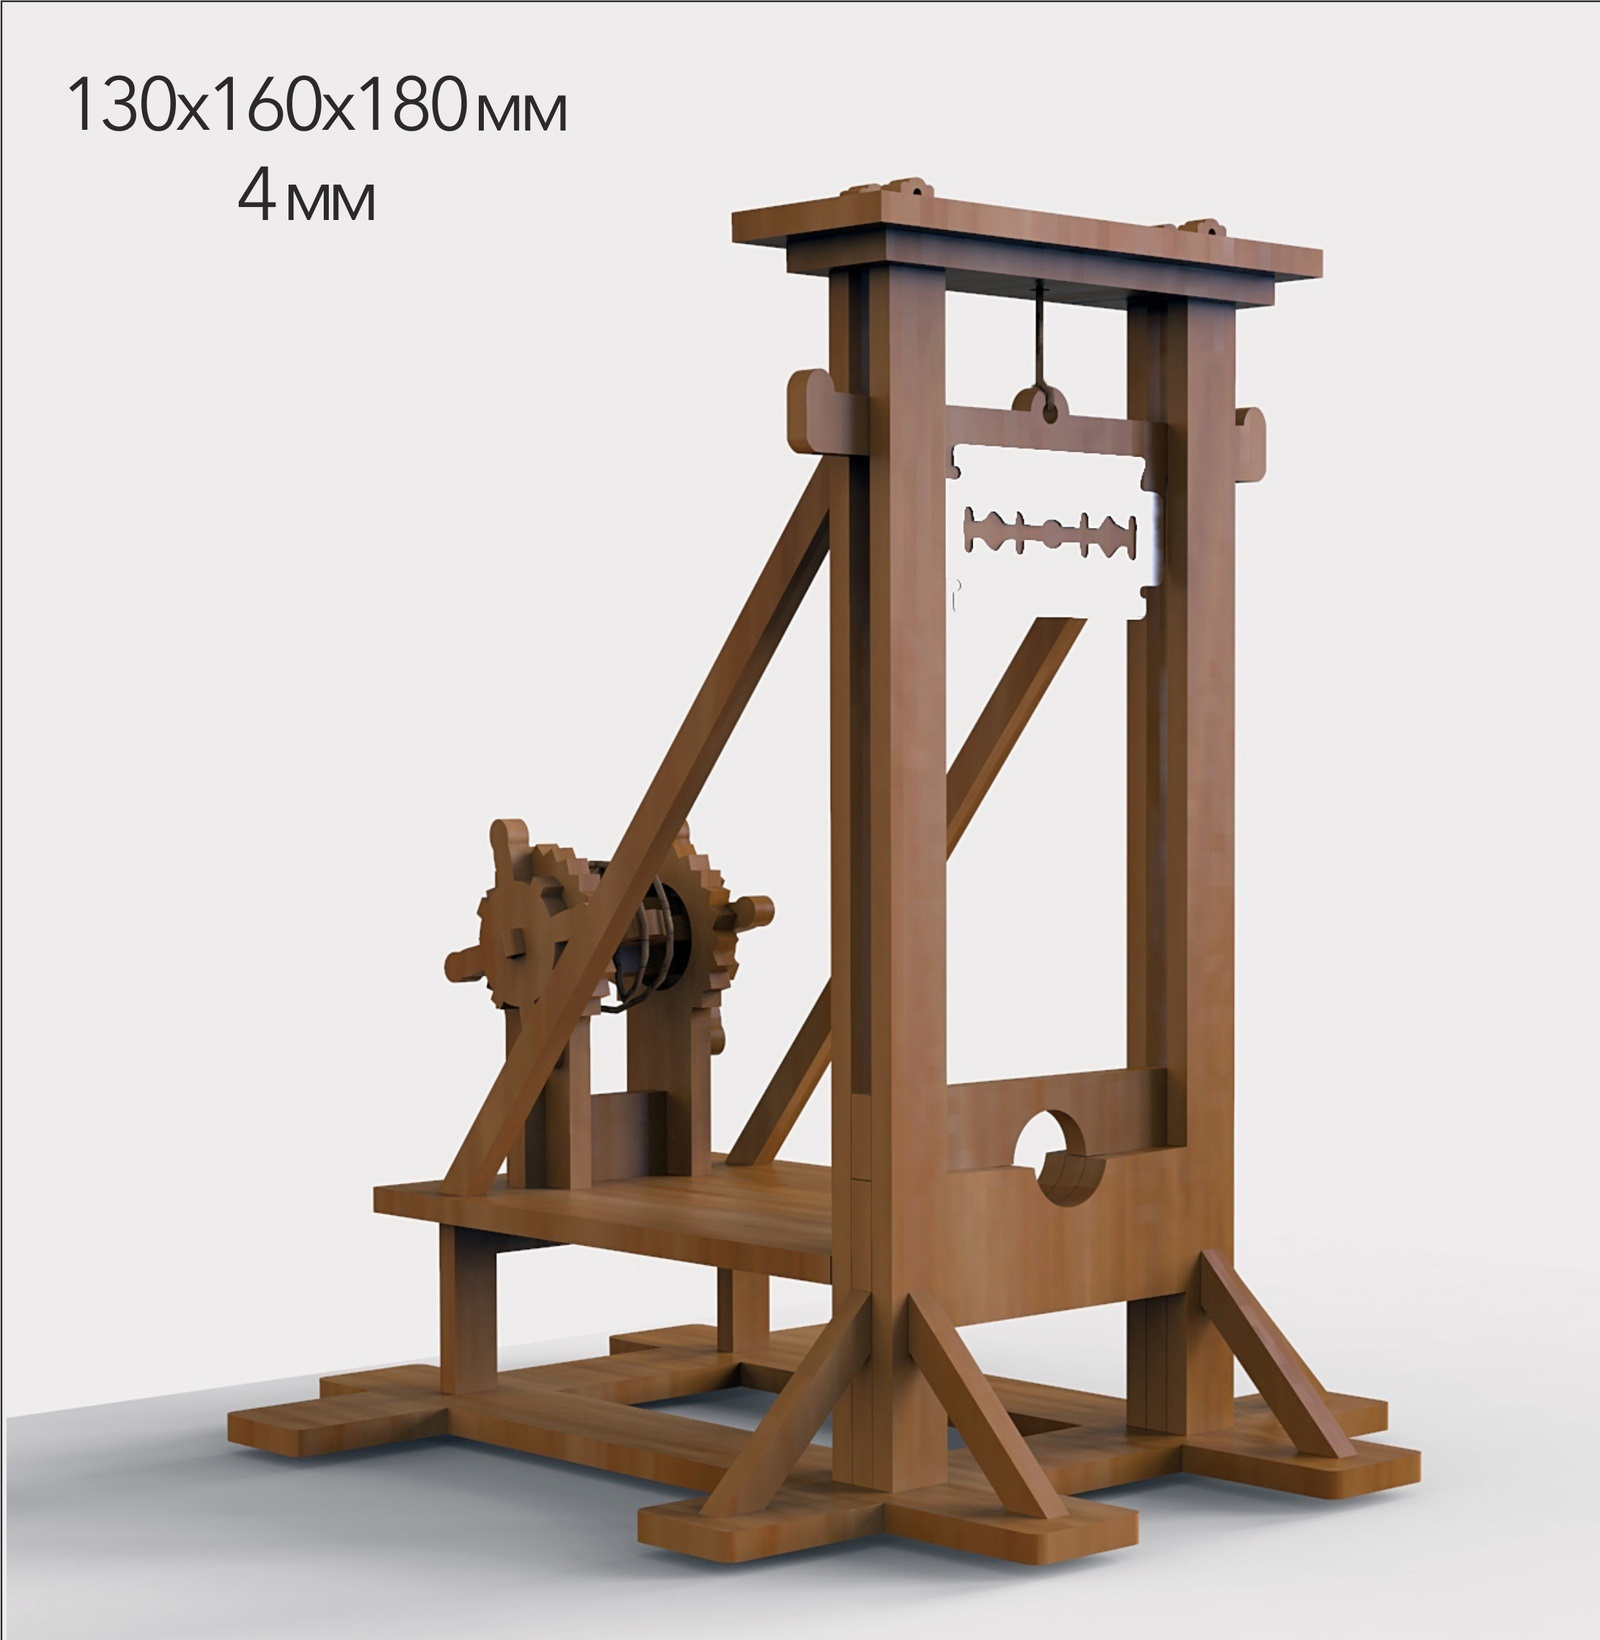 Laser Cut Guillotine Toy 4mm Free Vector